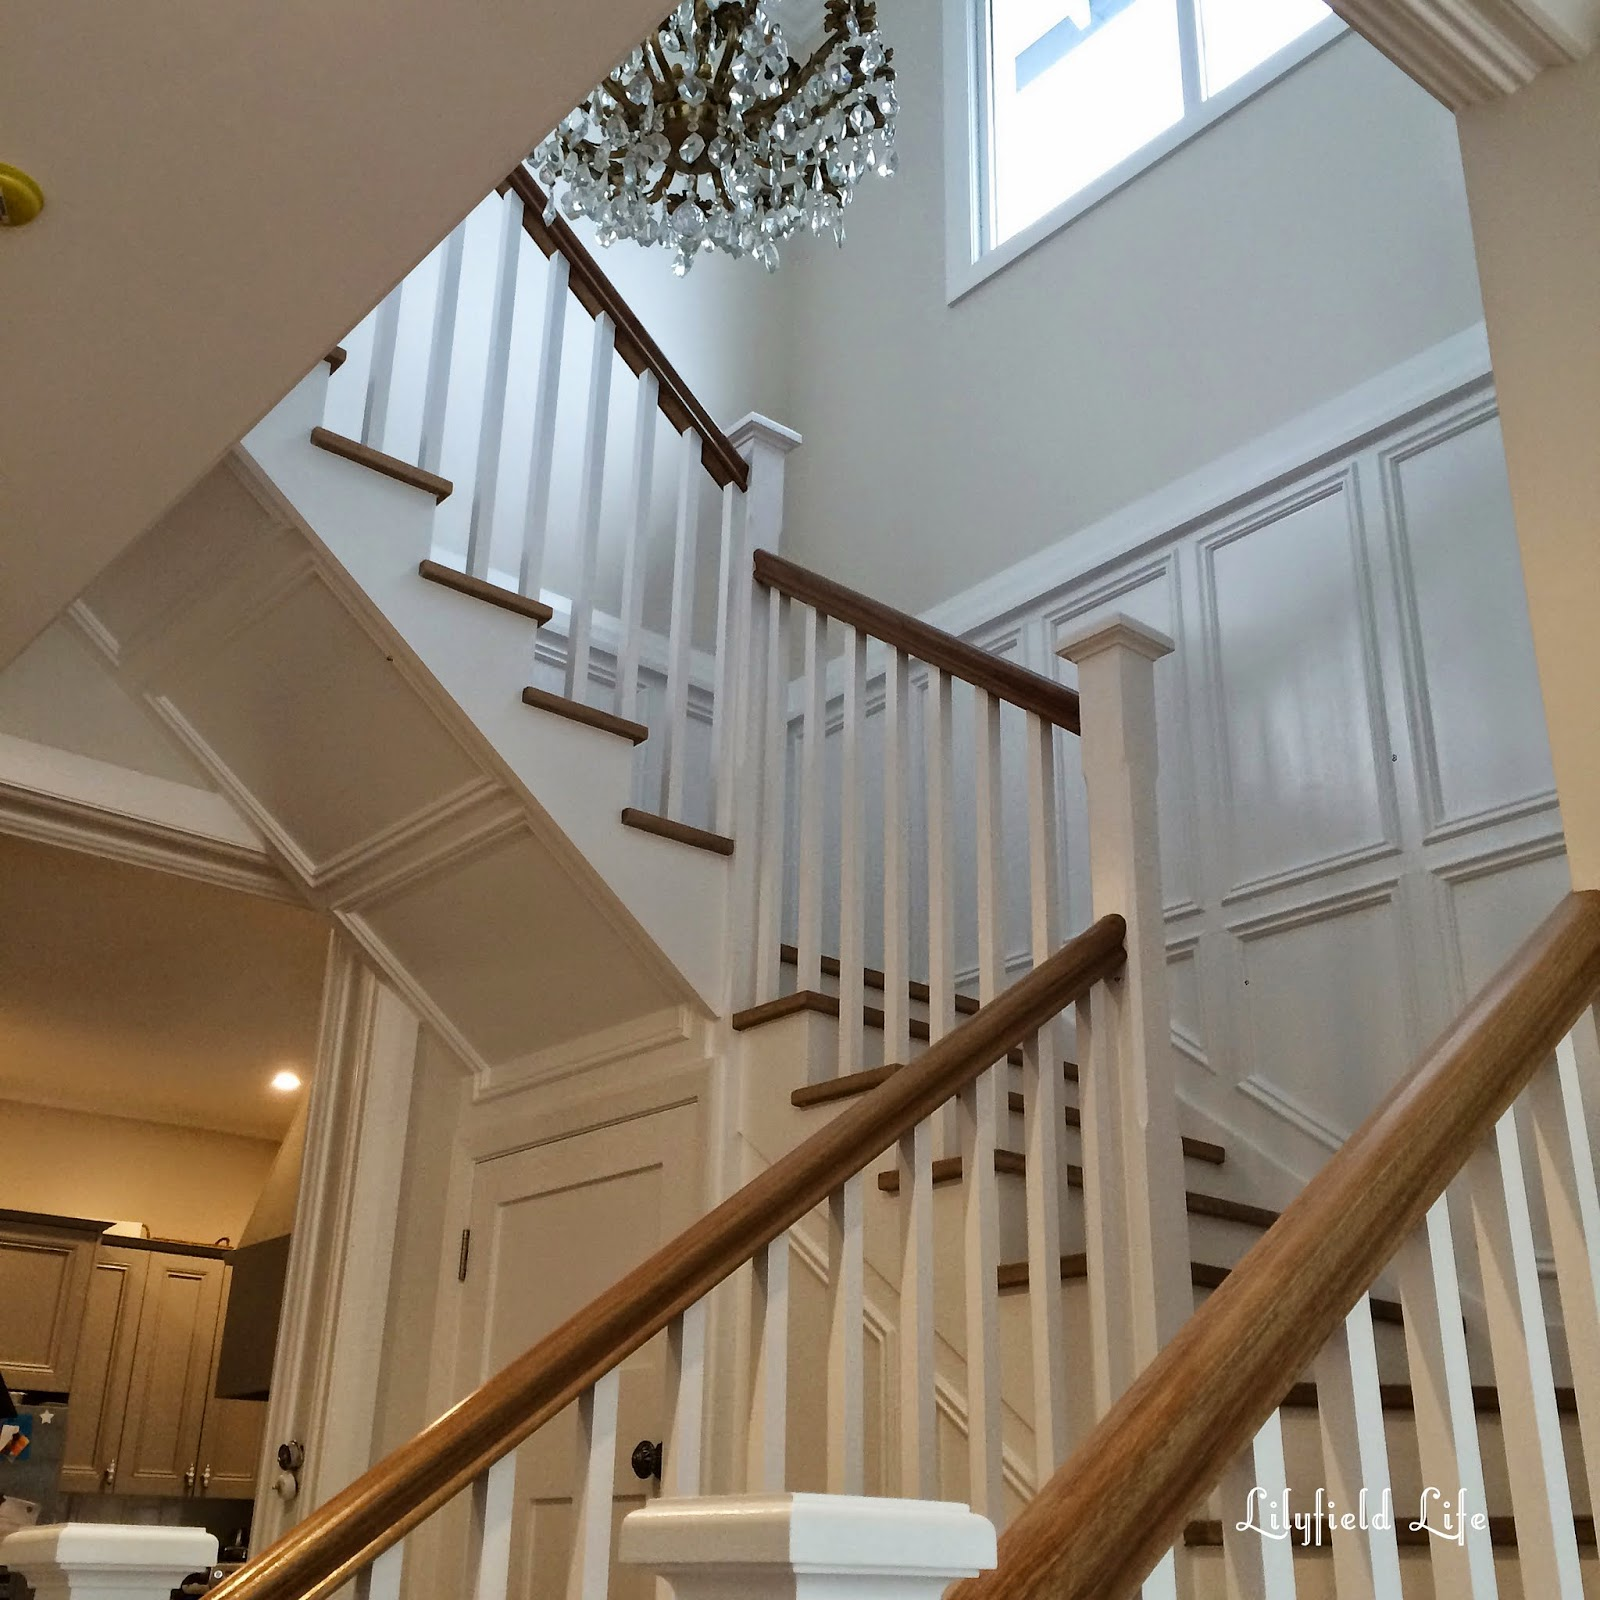 Renovation Update: Staircase Progress